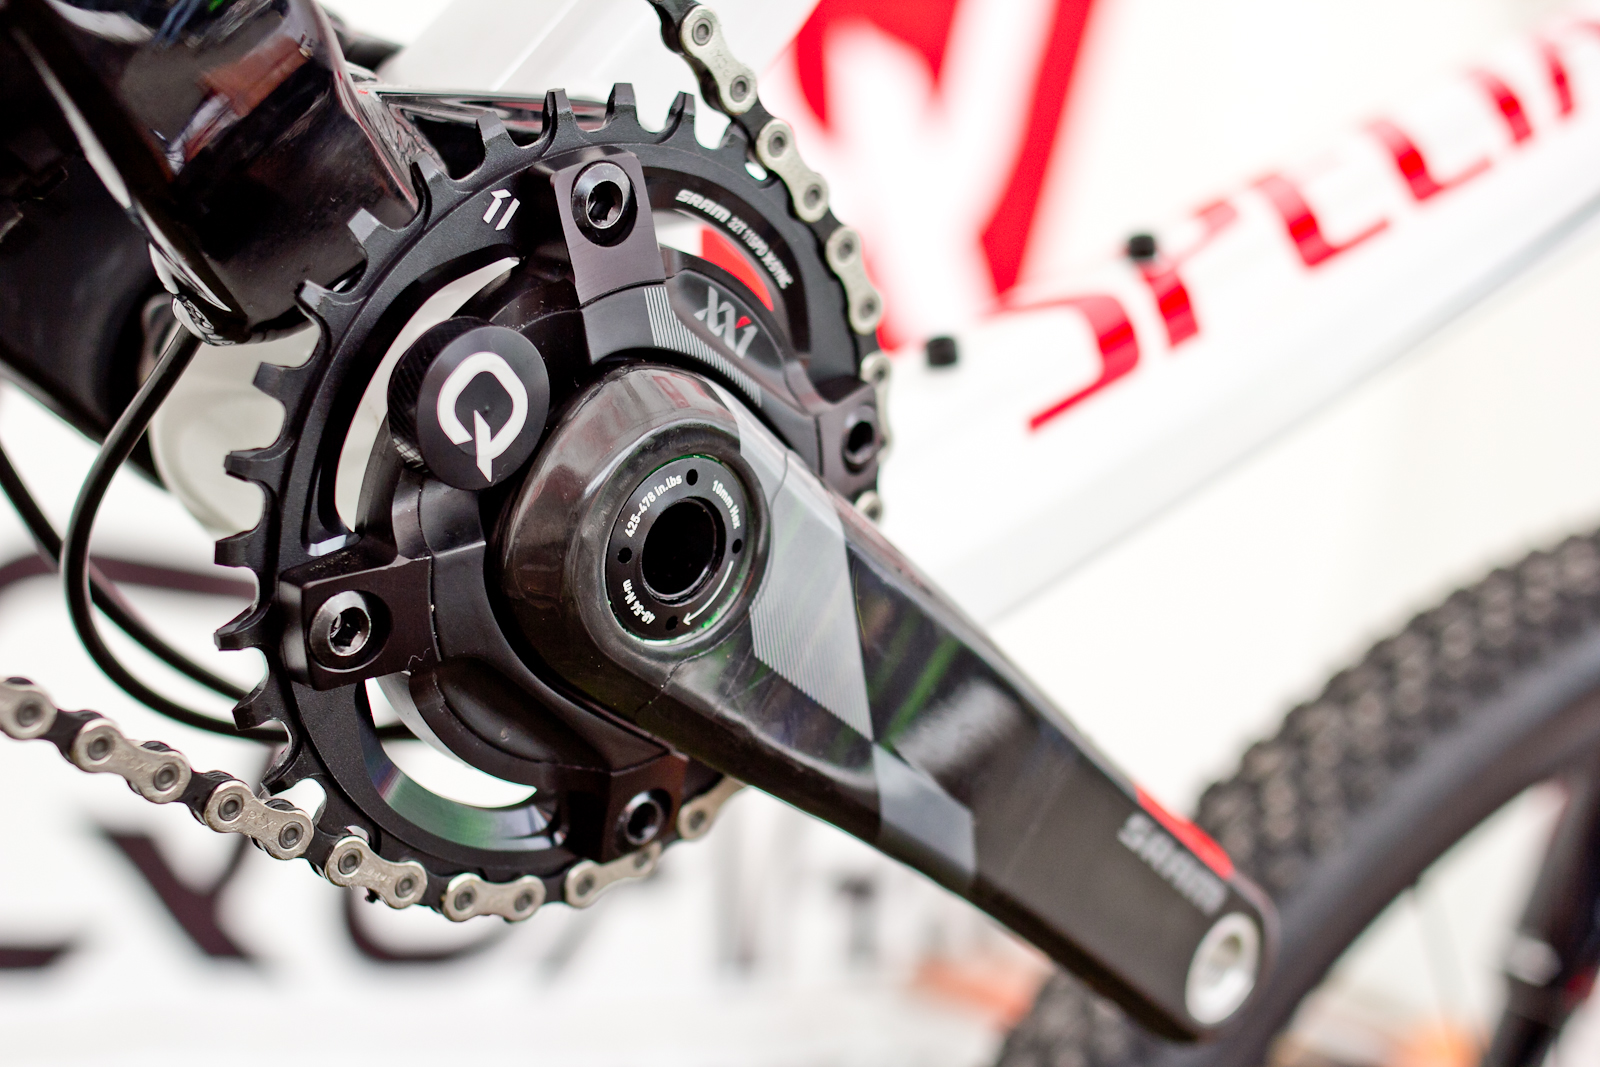 Biking Bikes Sram Xx1 Quarq Power Meter Cranks - 2015 Mountain Bike